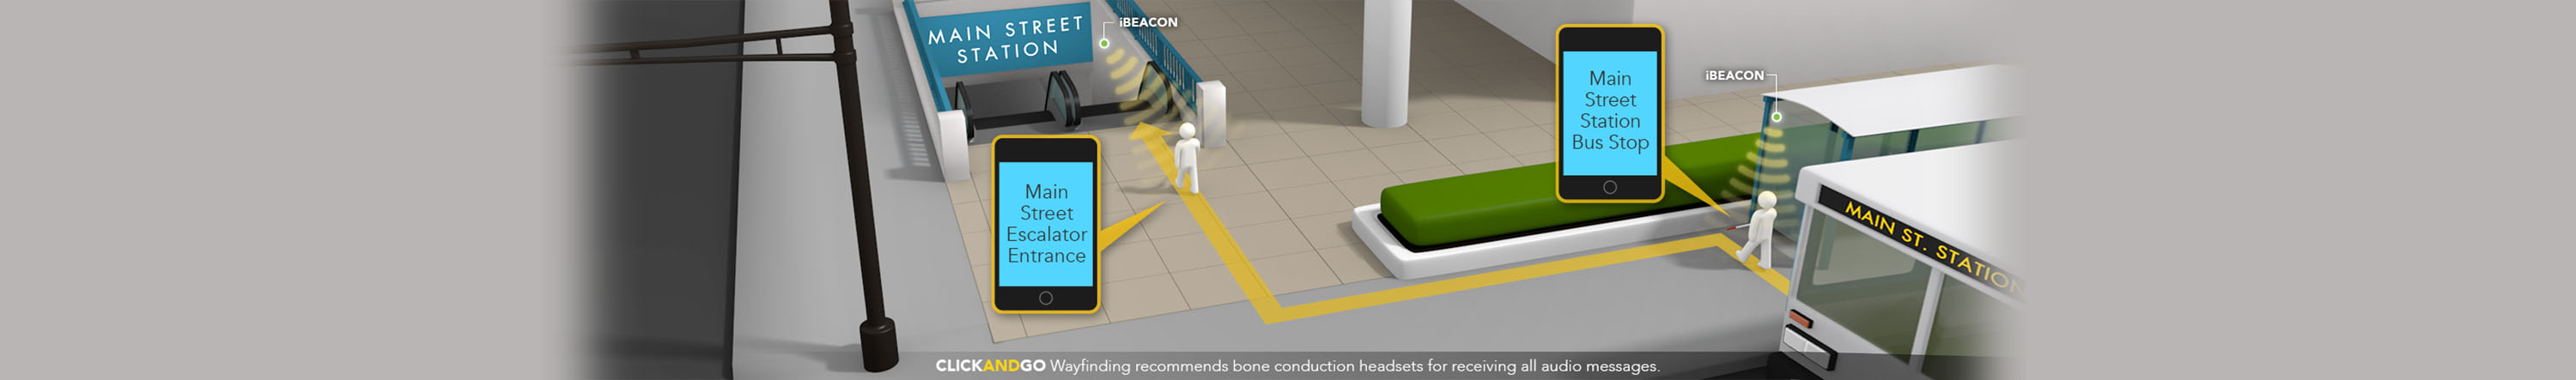 Graphic illustration showing blind pedestrian traveling route from bus stop to subway entrance. This image illustrates the messaging support of beacons, as it announces the traveler is approaching the escalator entrance of the subway station.